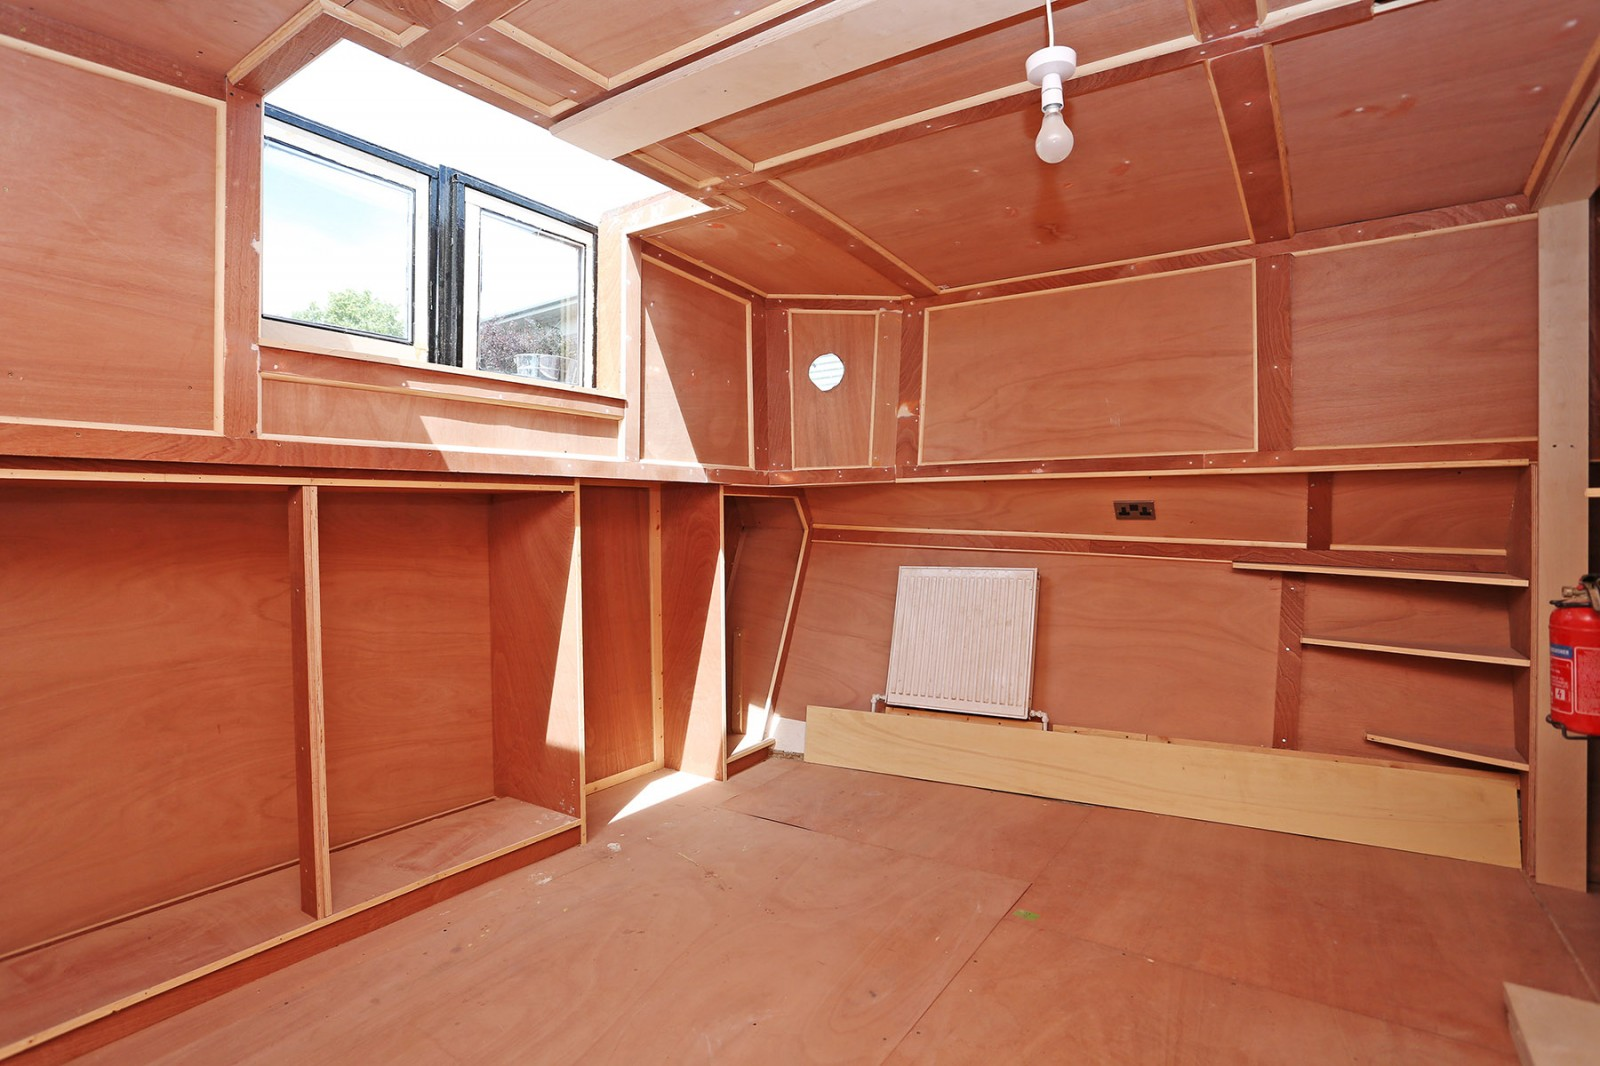 2 bedroom property for sale in Packet Boat Marina, Packet